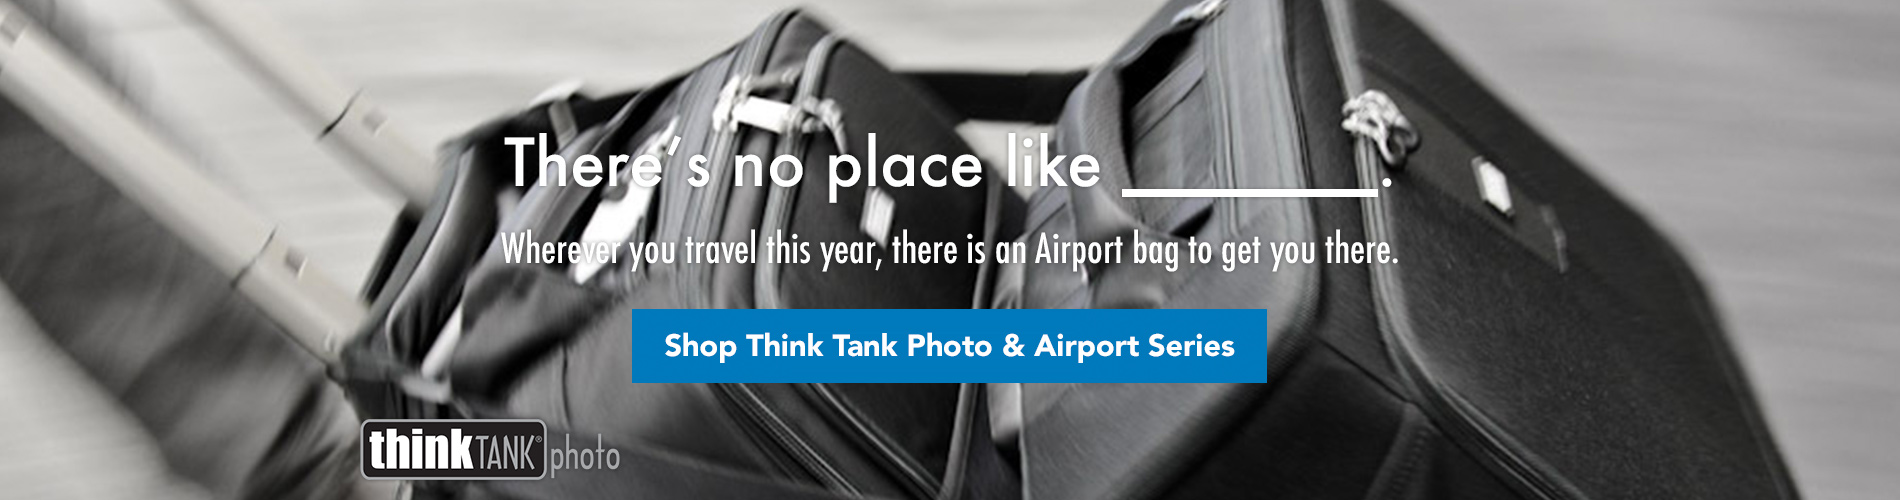 Wherever you travel this year, there is an Airport bag to get you there. Shop Think Tank Photo & Airport Series →